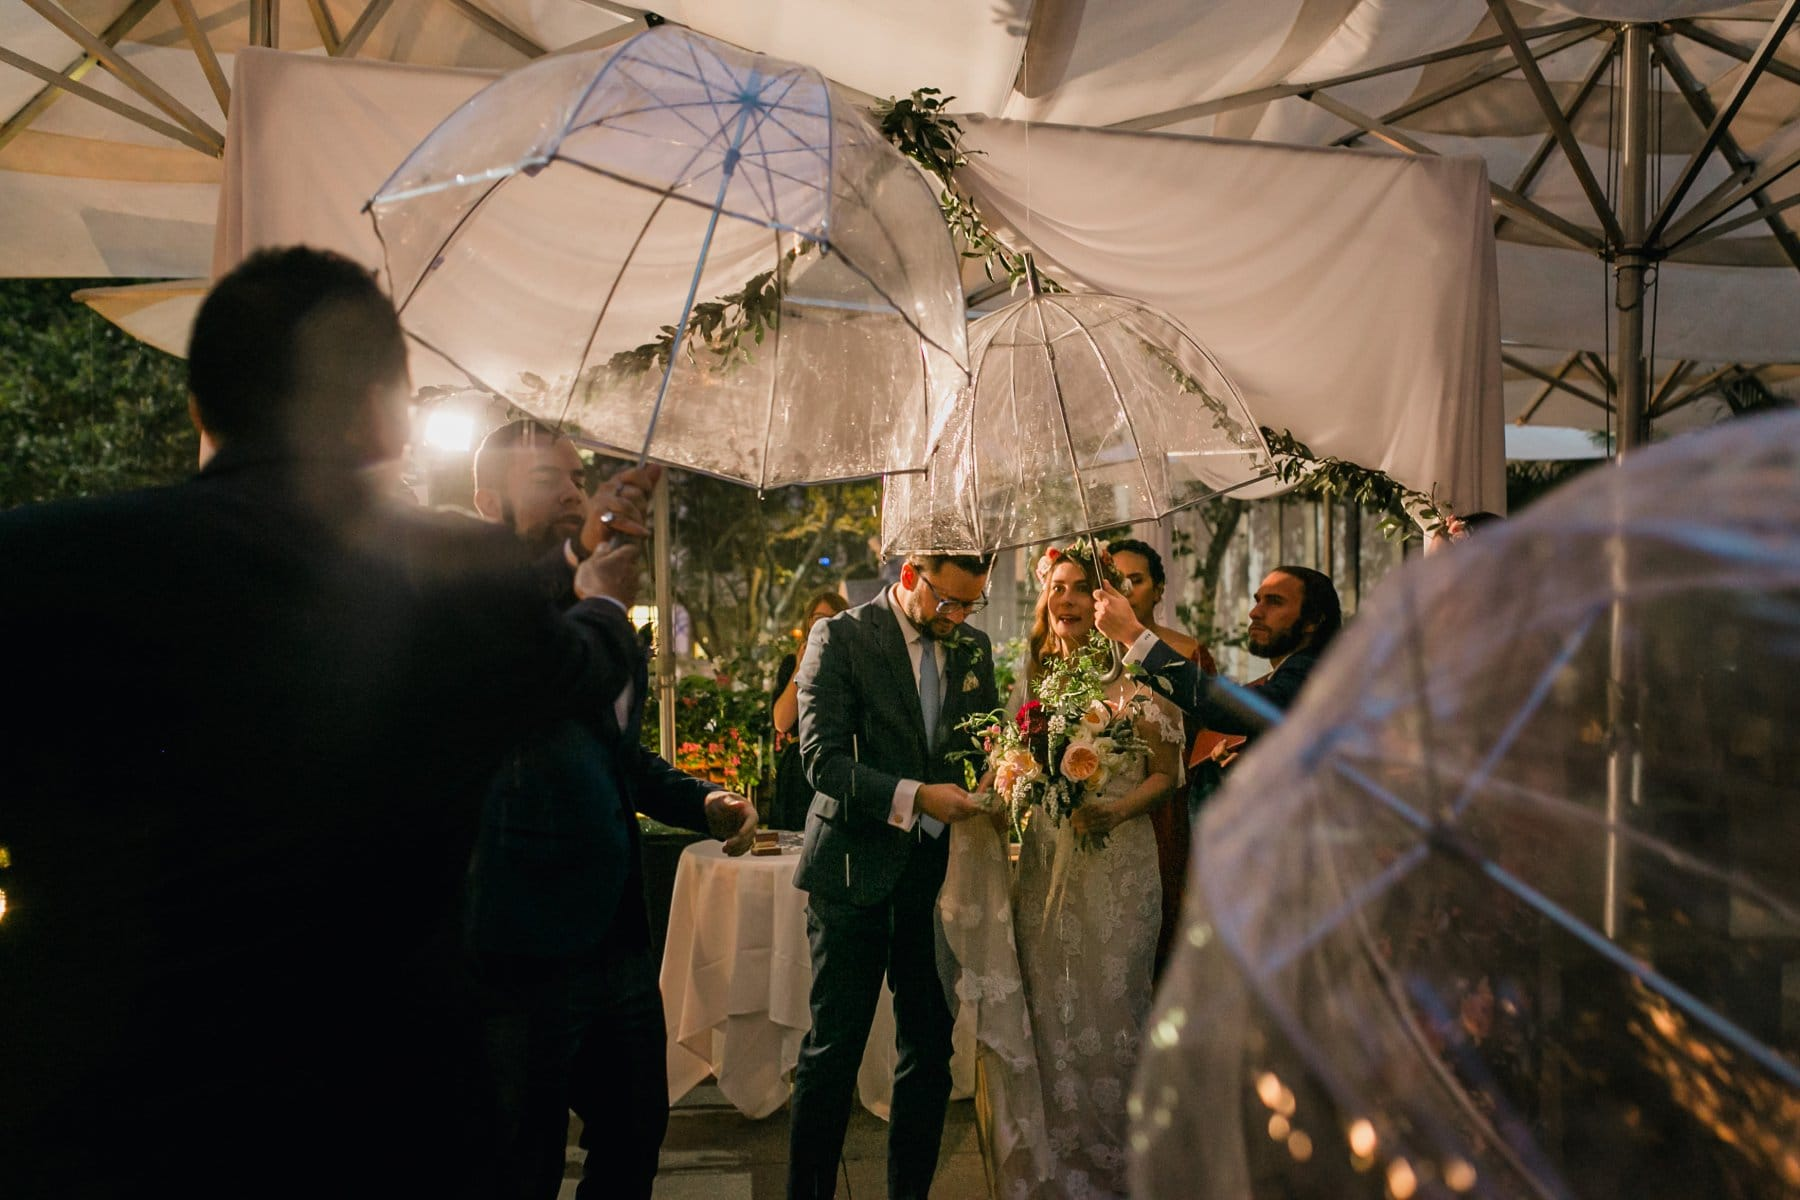 ceremony in the rain at night Bryant Park wedding ceremony New York City